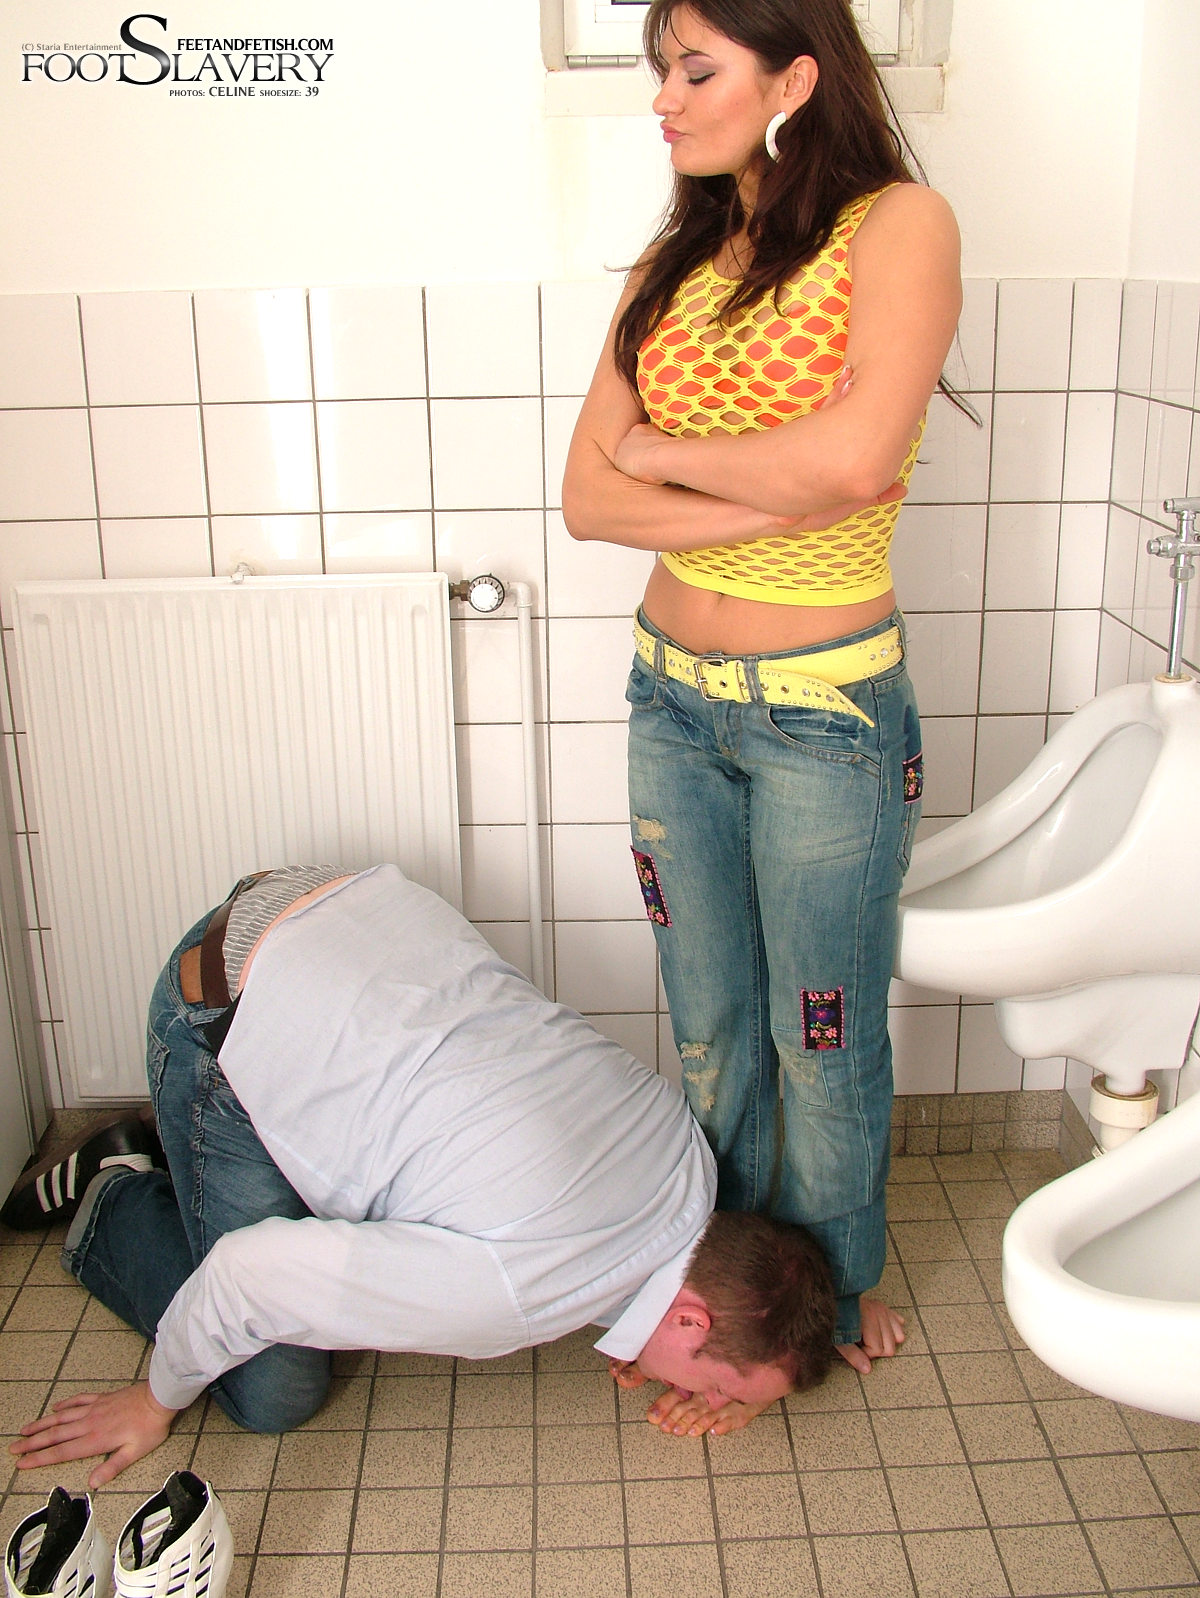 Fetish toilet training